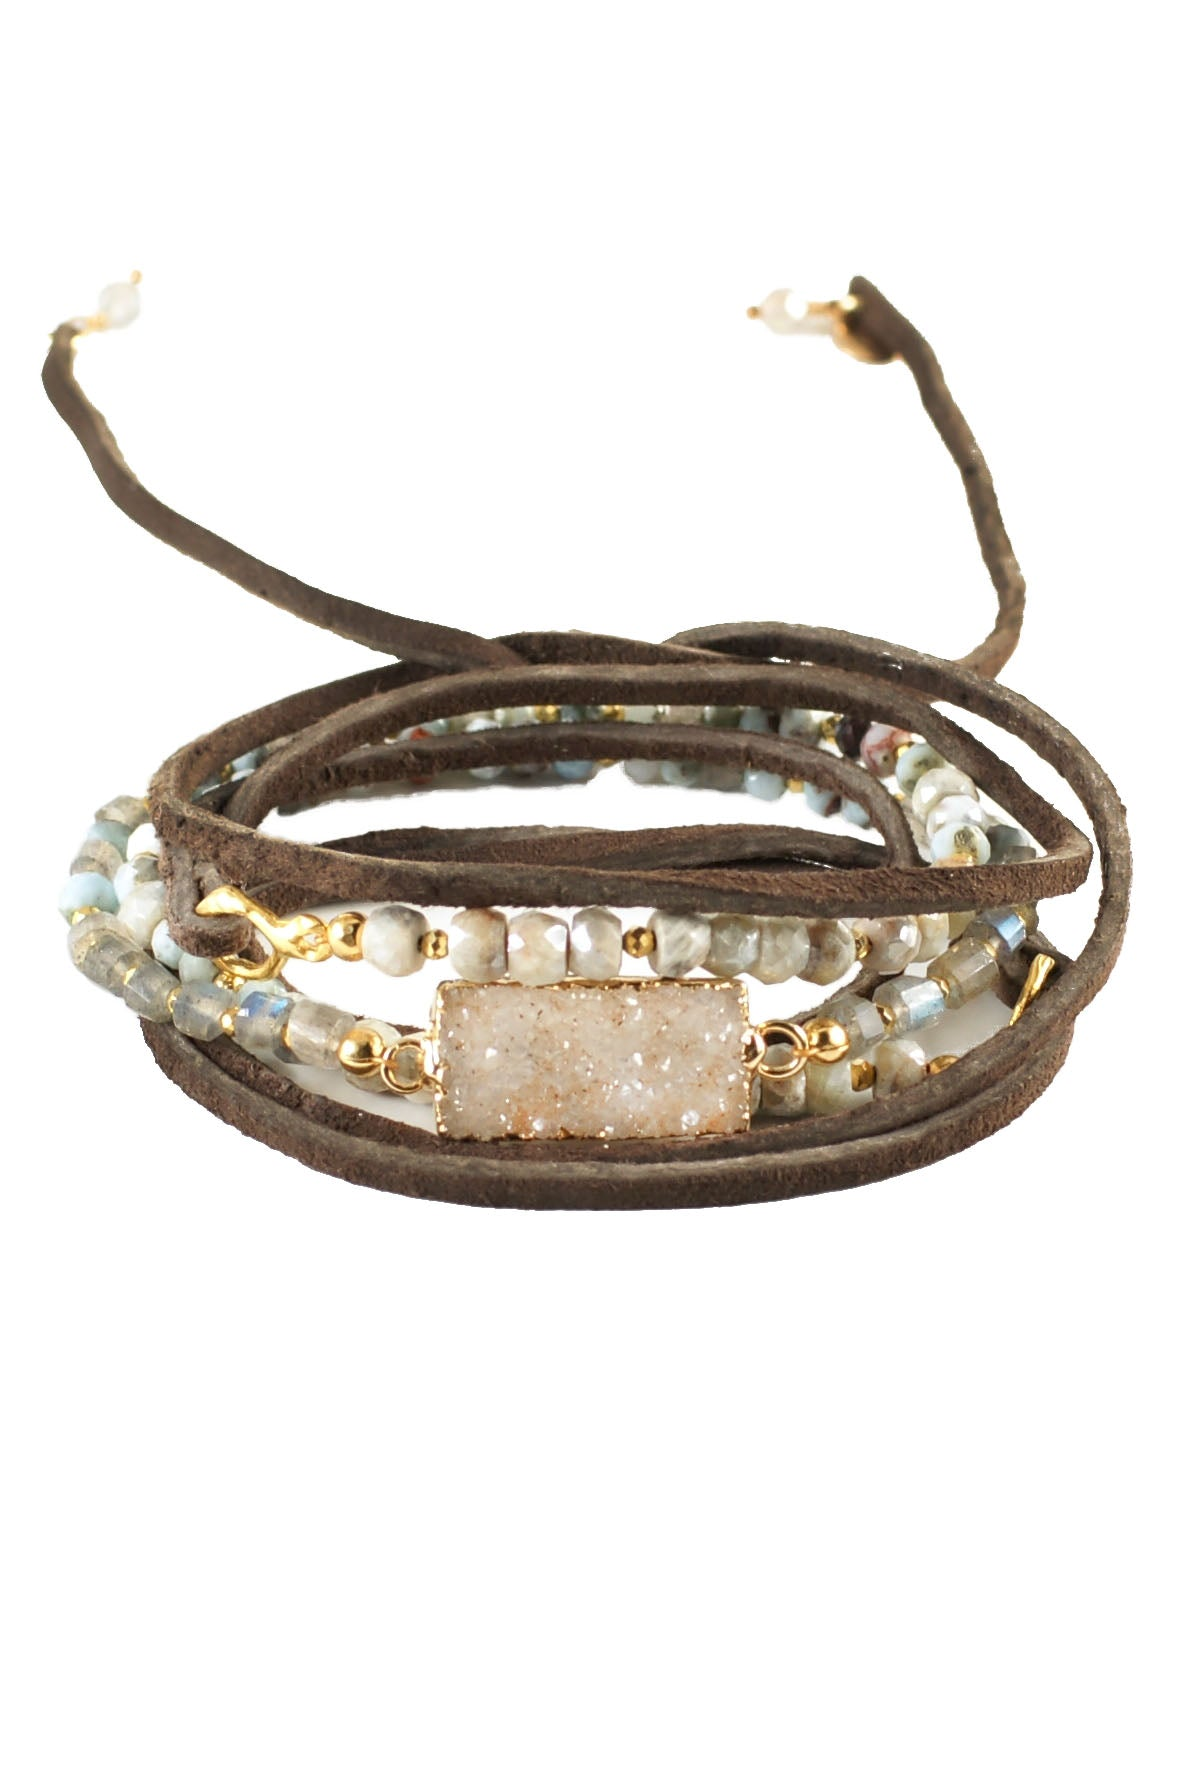 Larimar Silverite Labradorite Leather Wrap